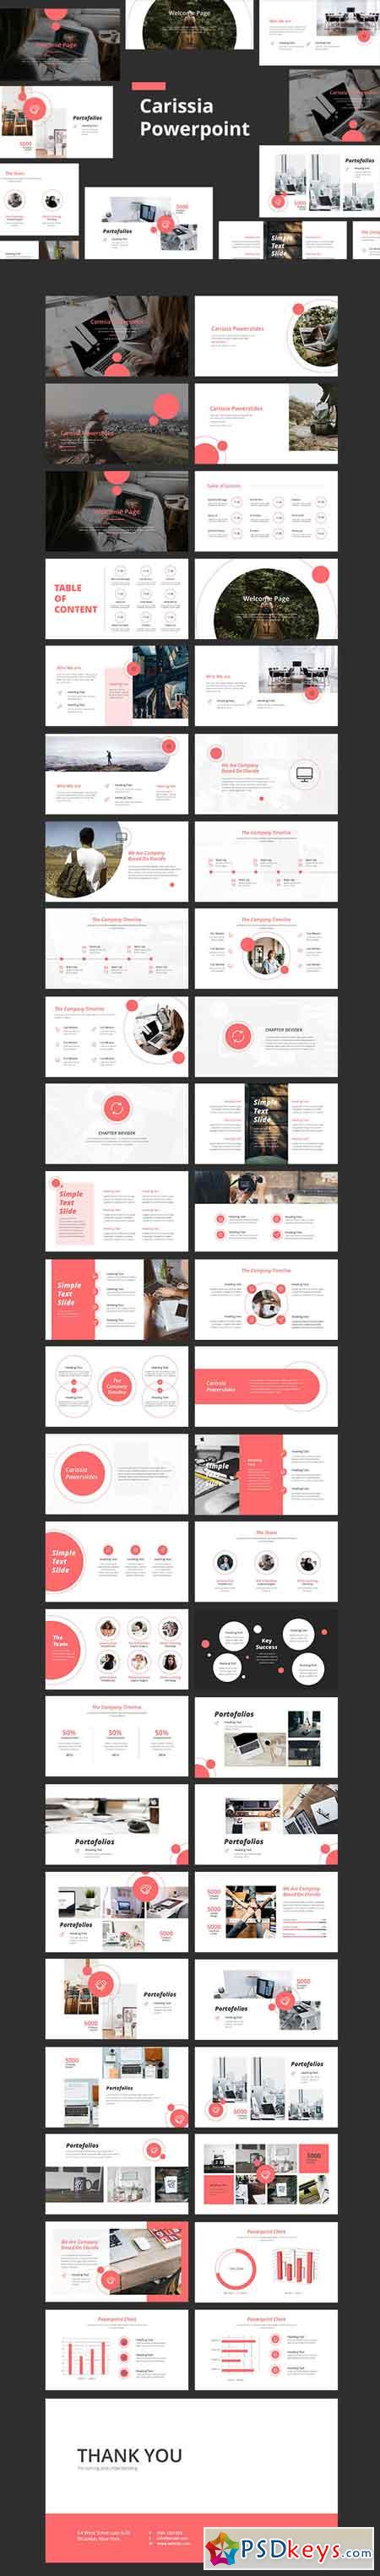 Carissia Powerpoint Templates 21968555